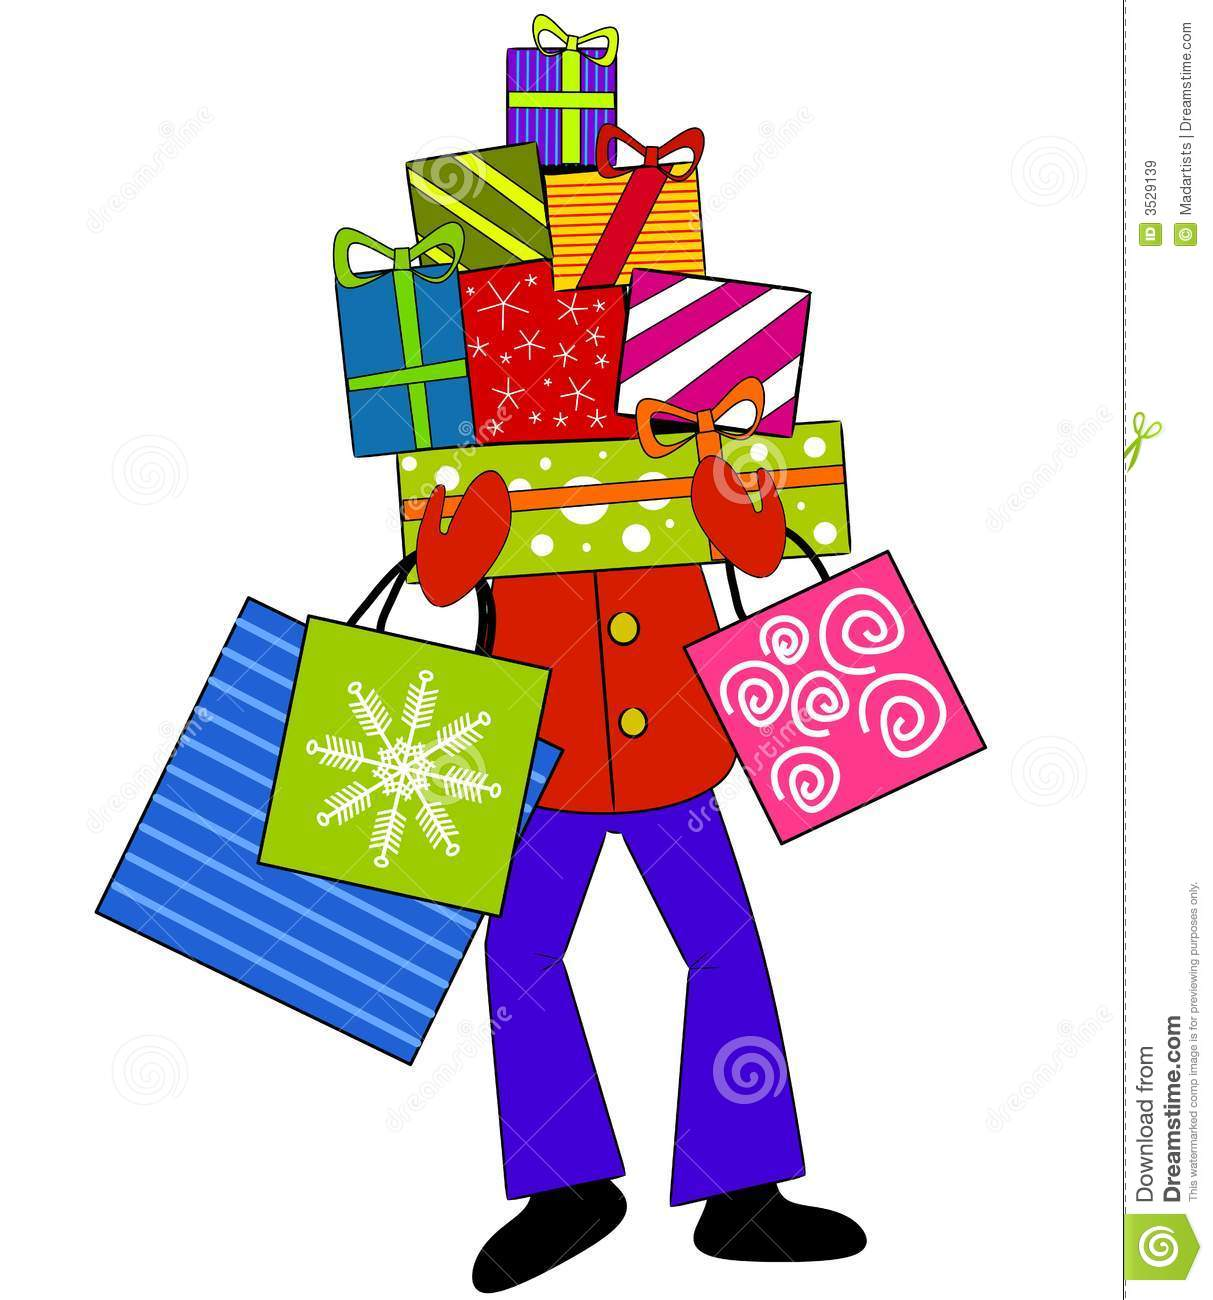 clip art illustration of a person carrying a large pile of Christmas ...